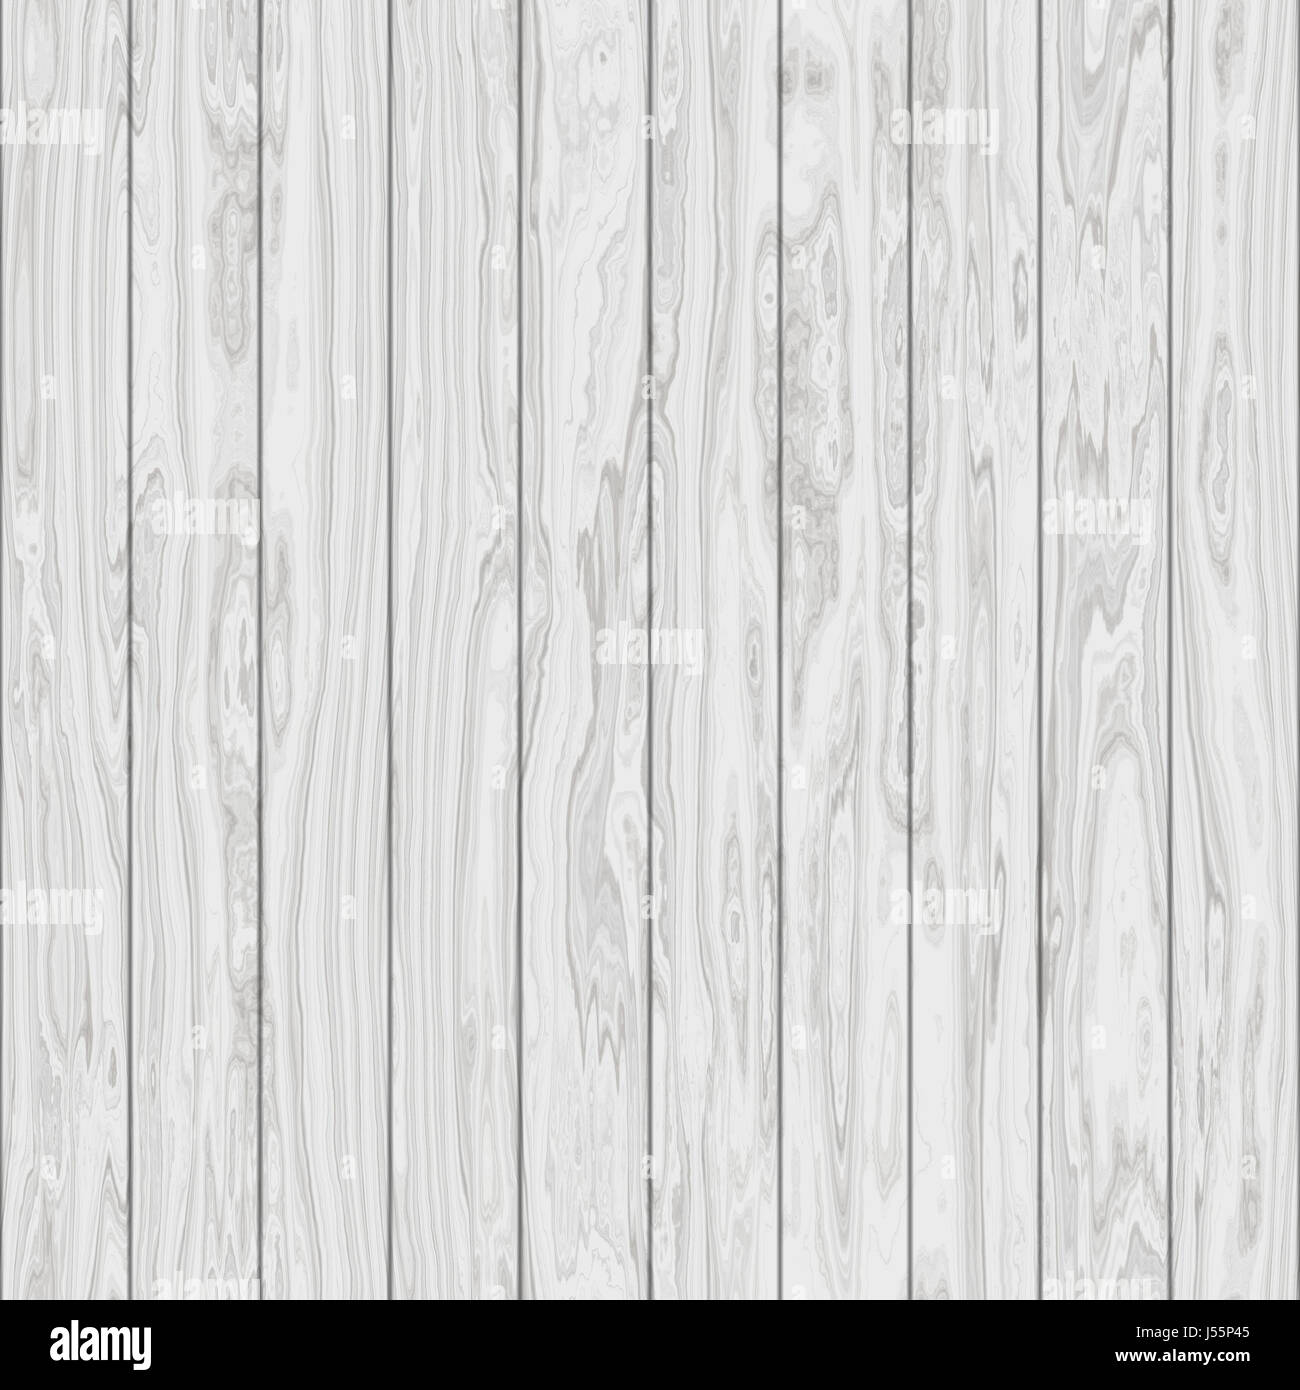 Seamless Wood Pallet Texture Illustration